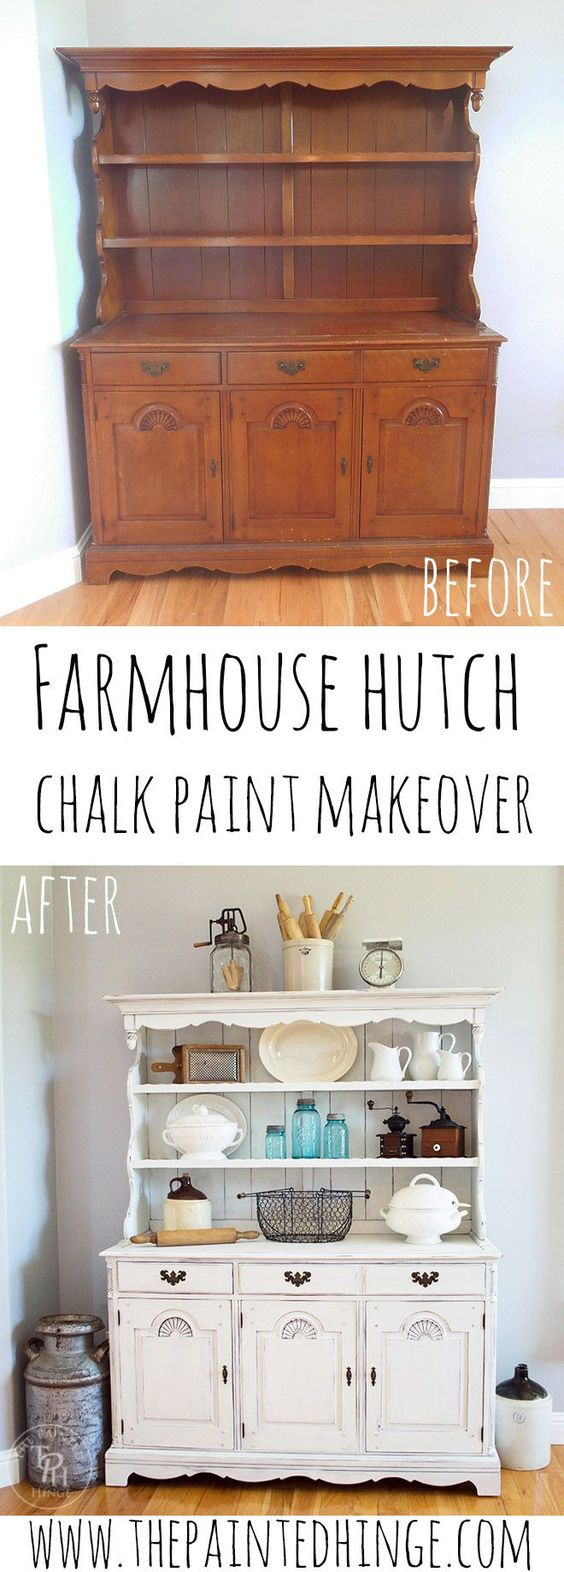 30 Farmhouse Furniture Makeovers - Hutch - Life on Kaydeross Creek